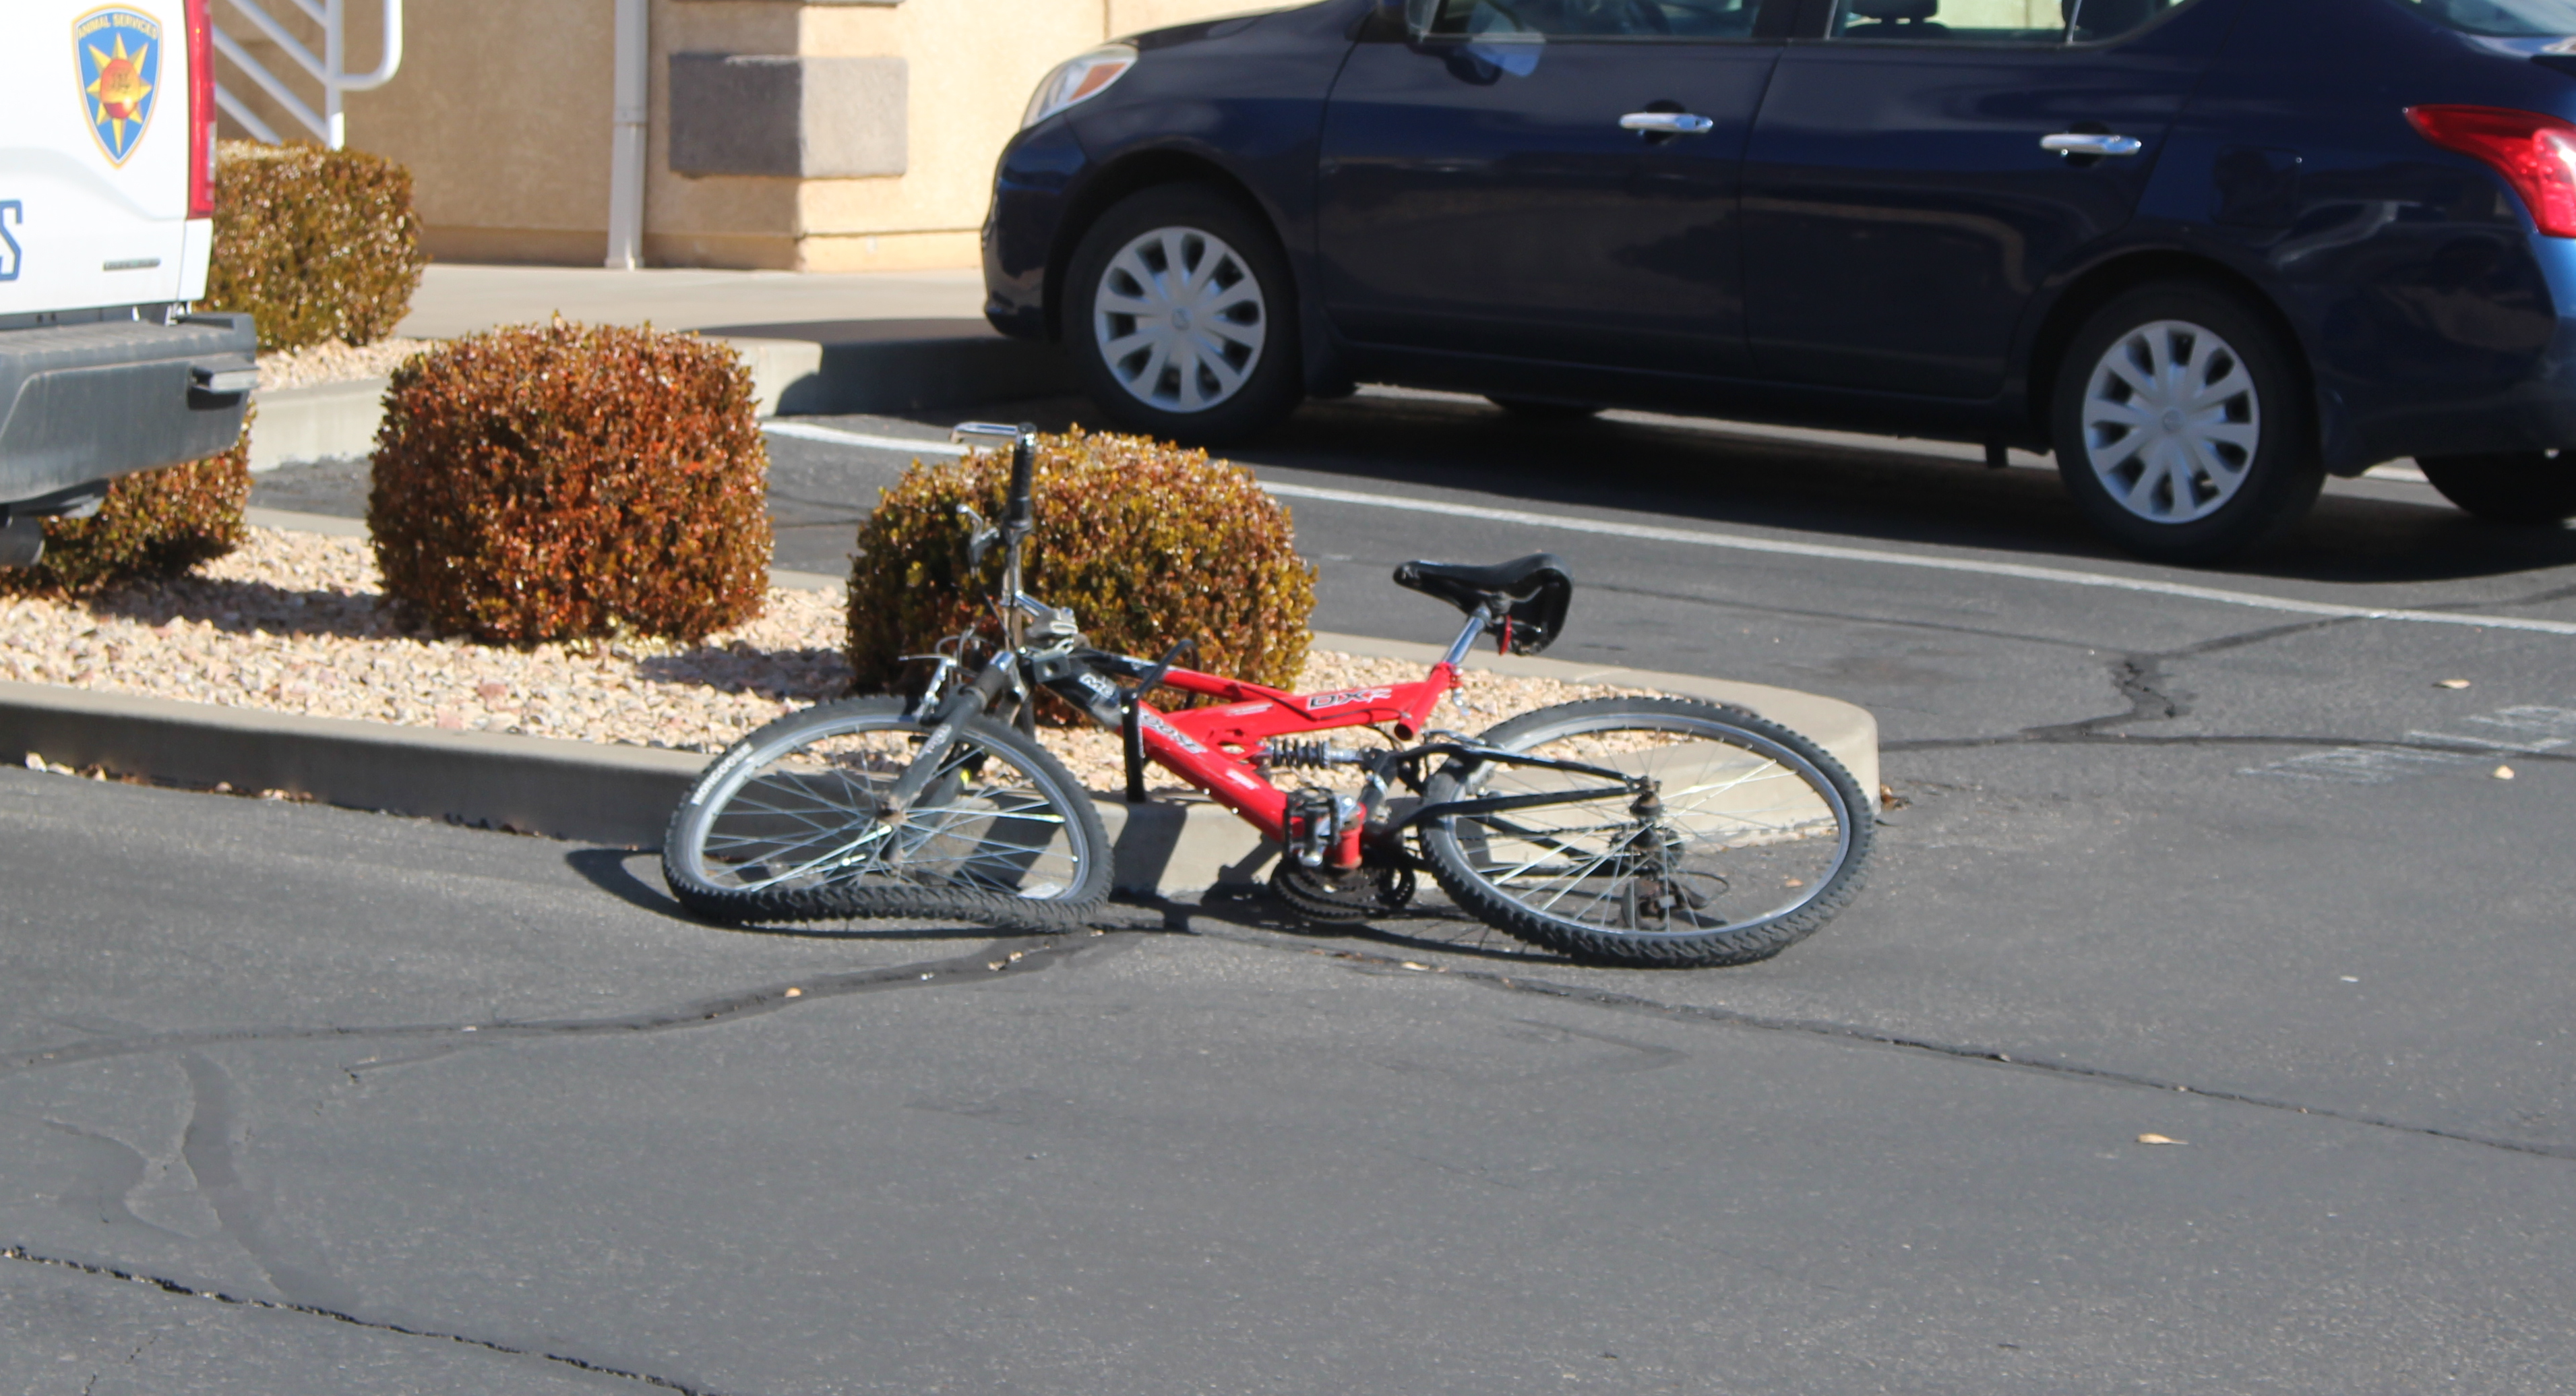 A bicycle sits in the parking lot with its wheel damaged after a collision Wednesday on 100 South. St. George, Utah, Jan. 11, 2017 | Photo by Ric Wayman, St. George News